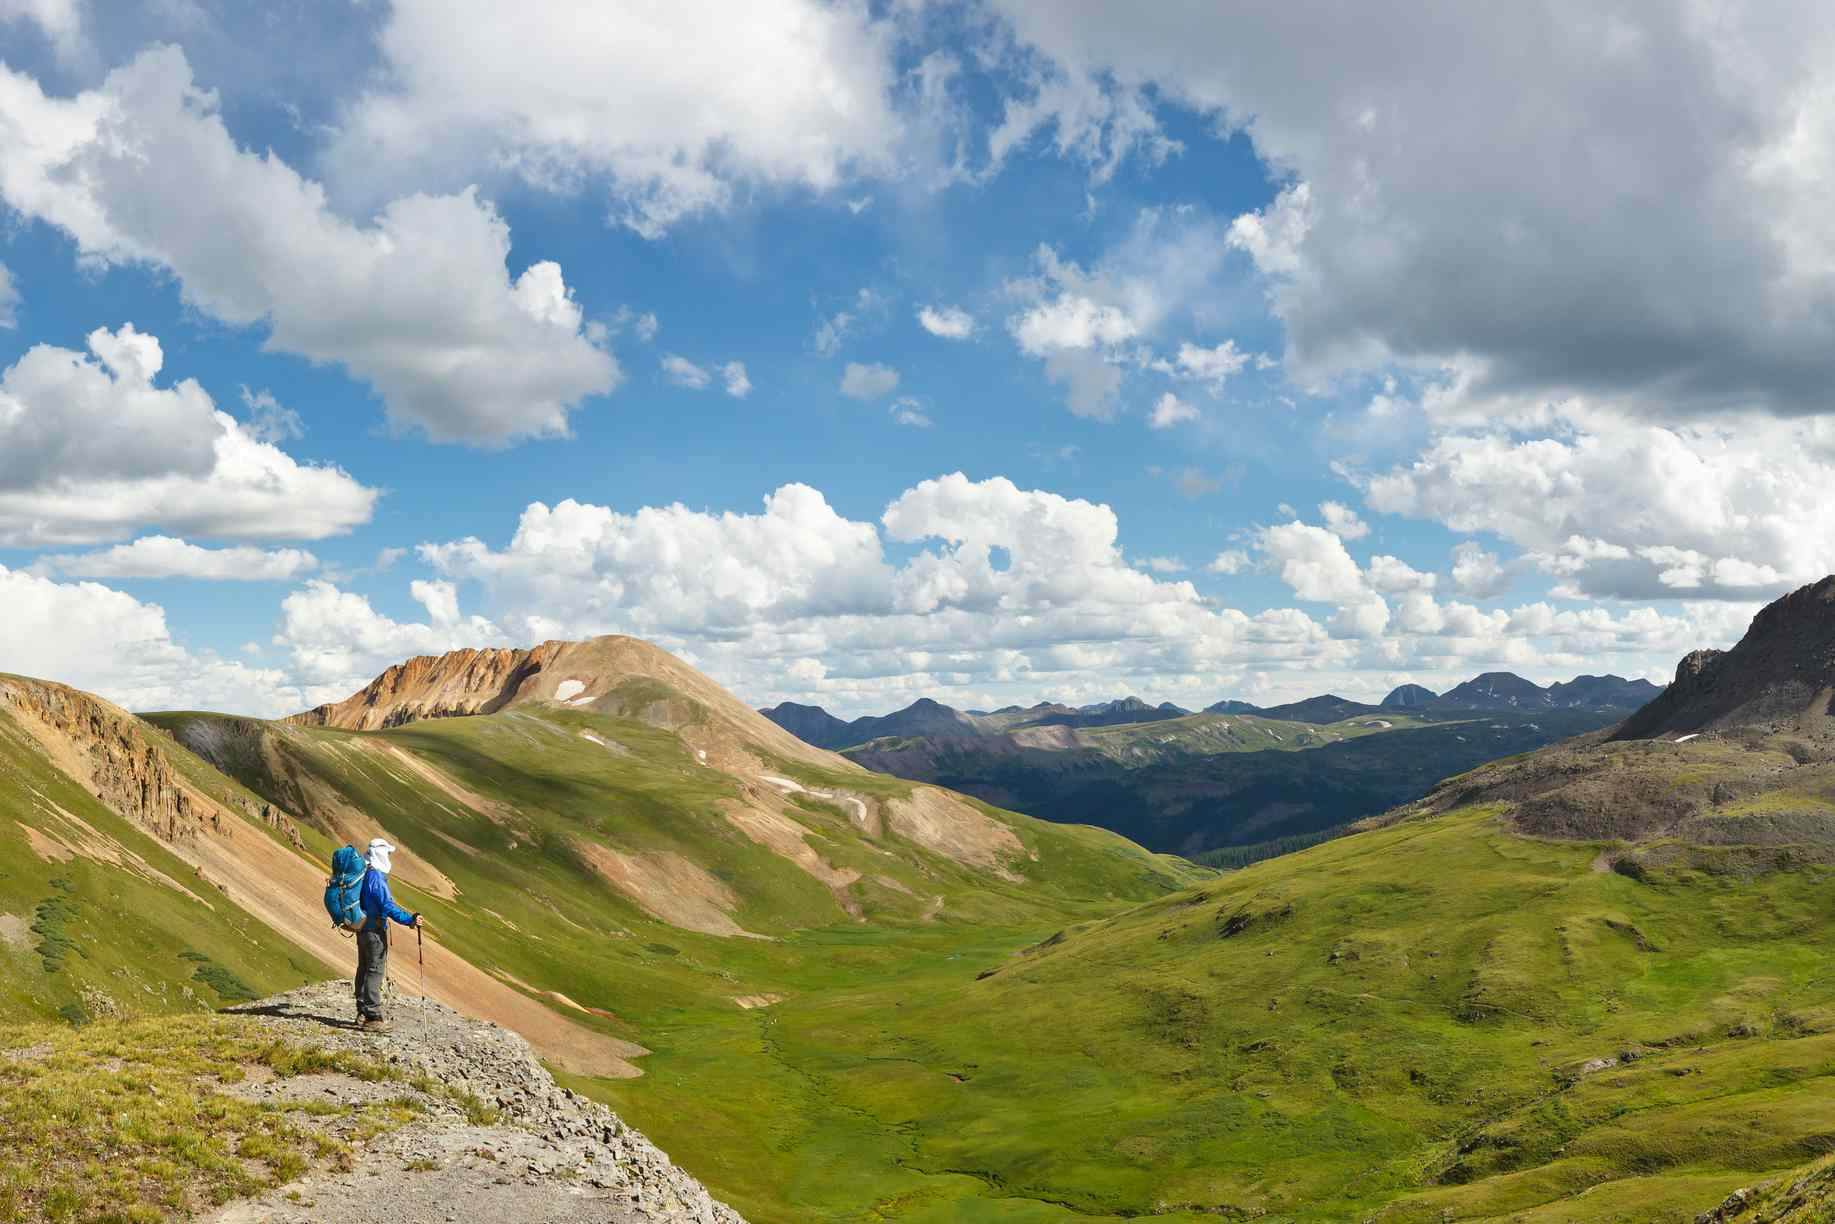 Hiker looking out over Colorado mountains from a viewpoint